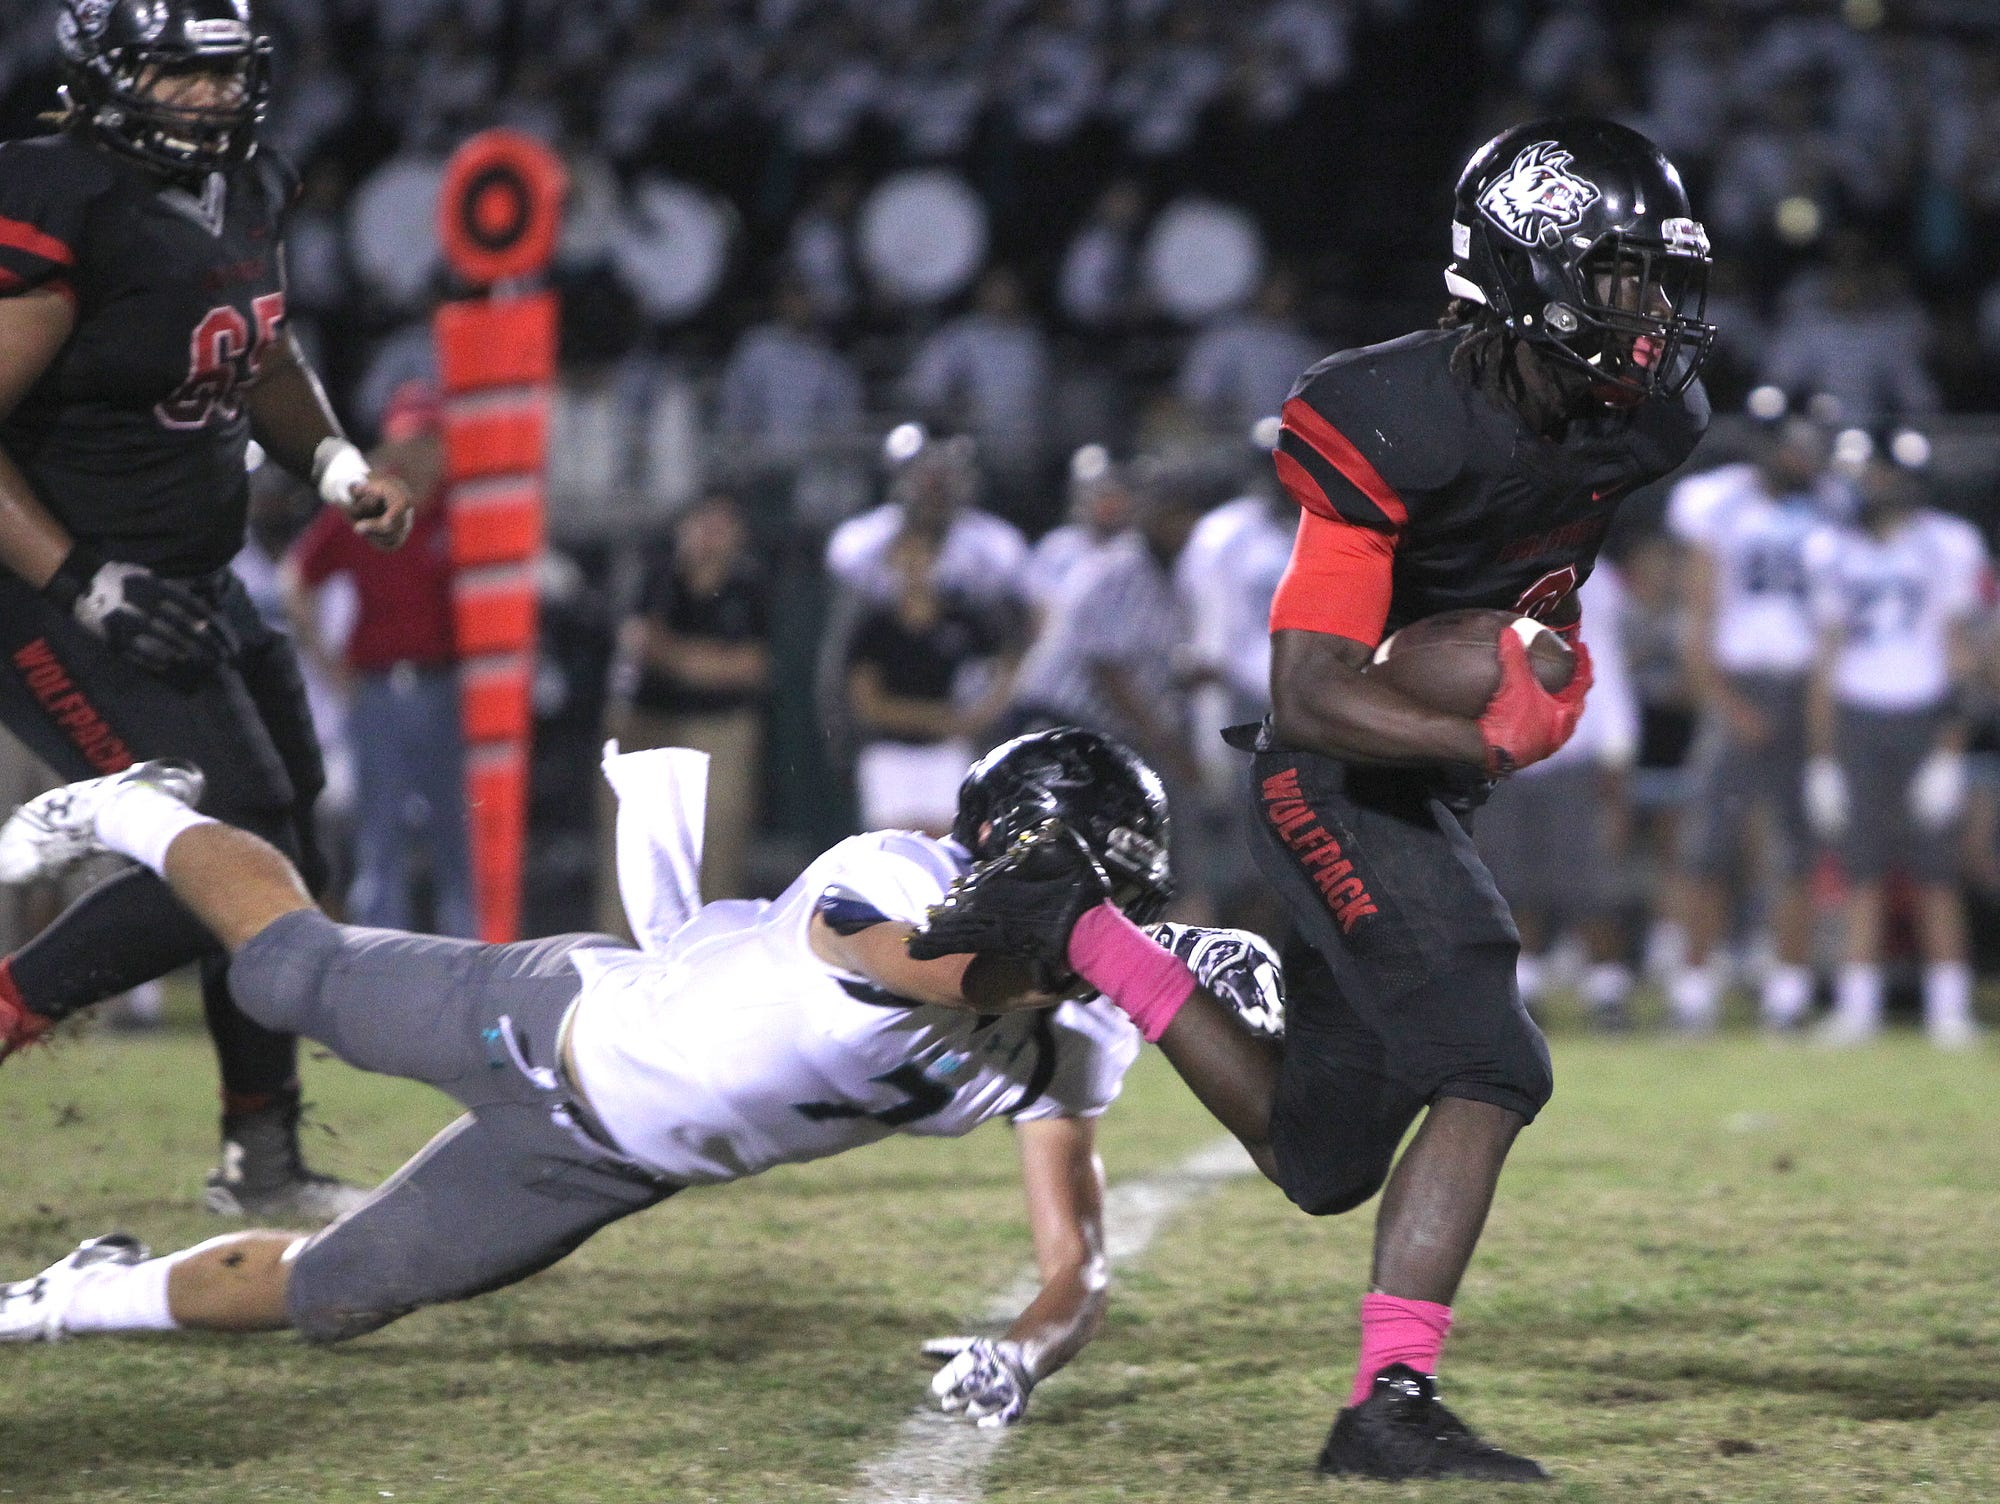 Gulf Coast defender Galvin Hoopes looses his grip on South ball carrier Willie Johnson at South Fort Myers High School Friday in Fort Myers.